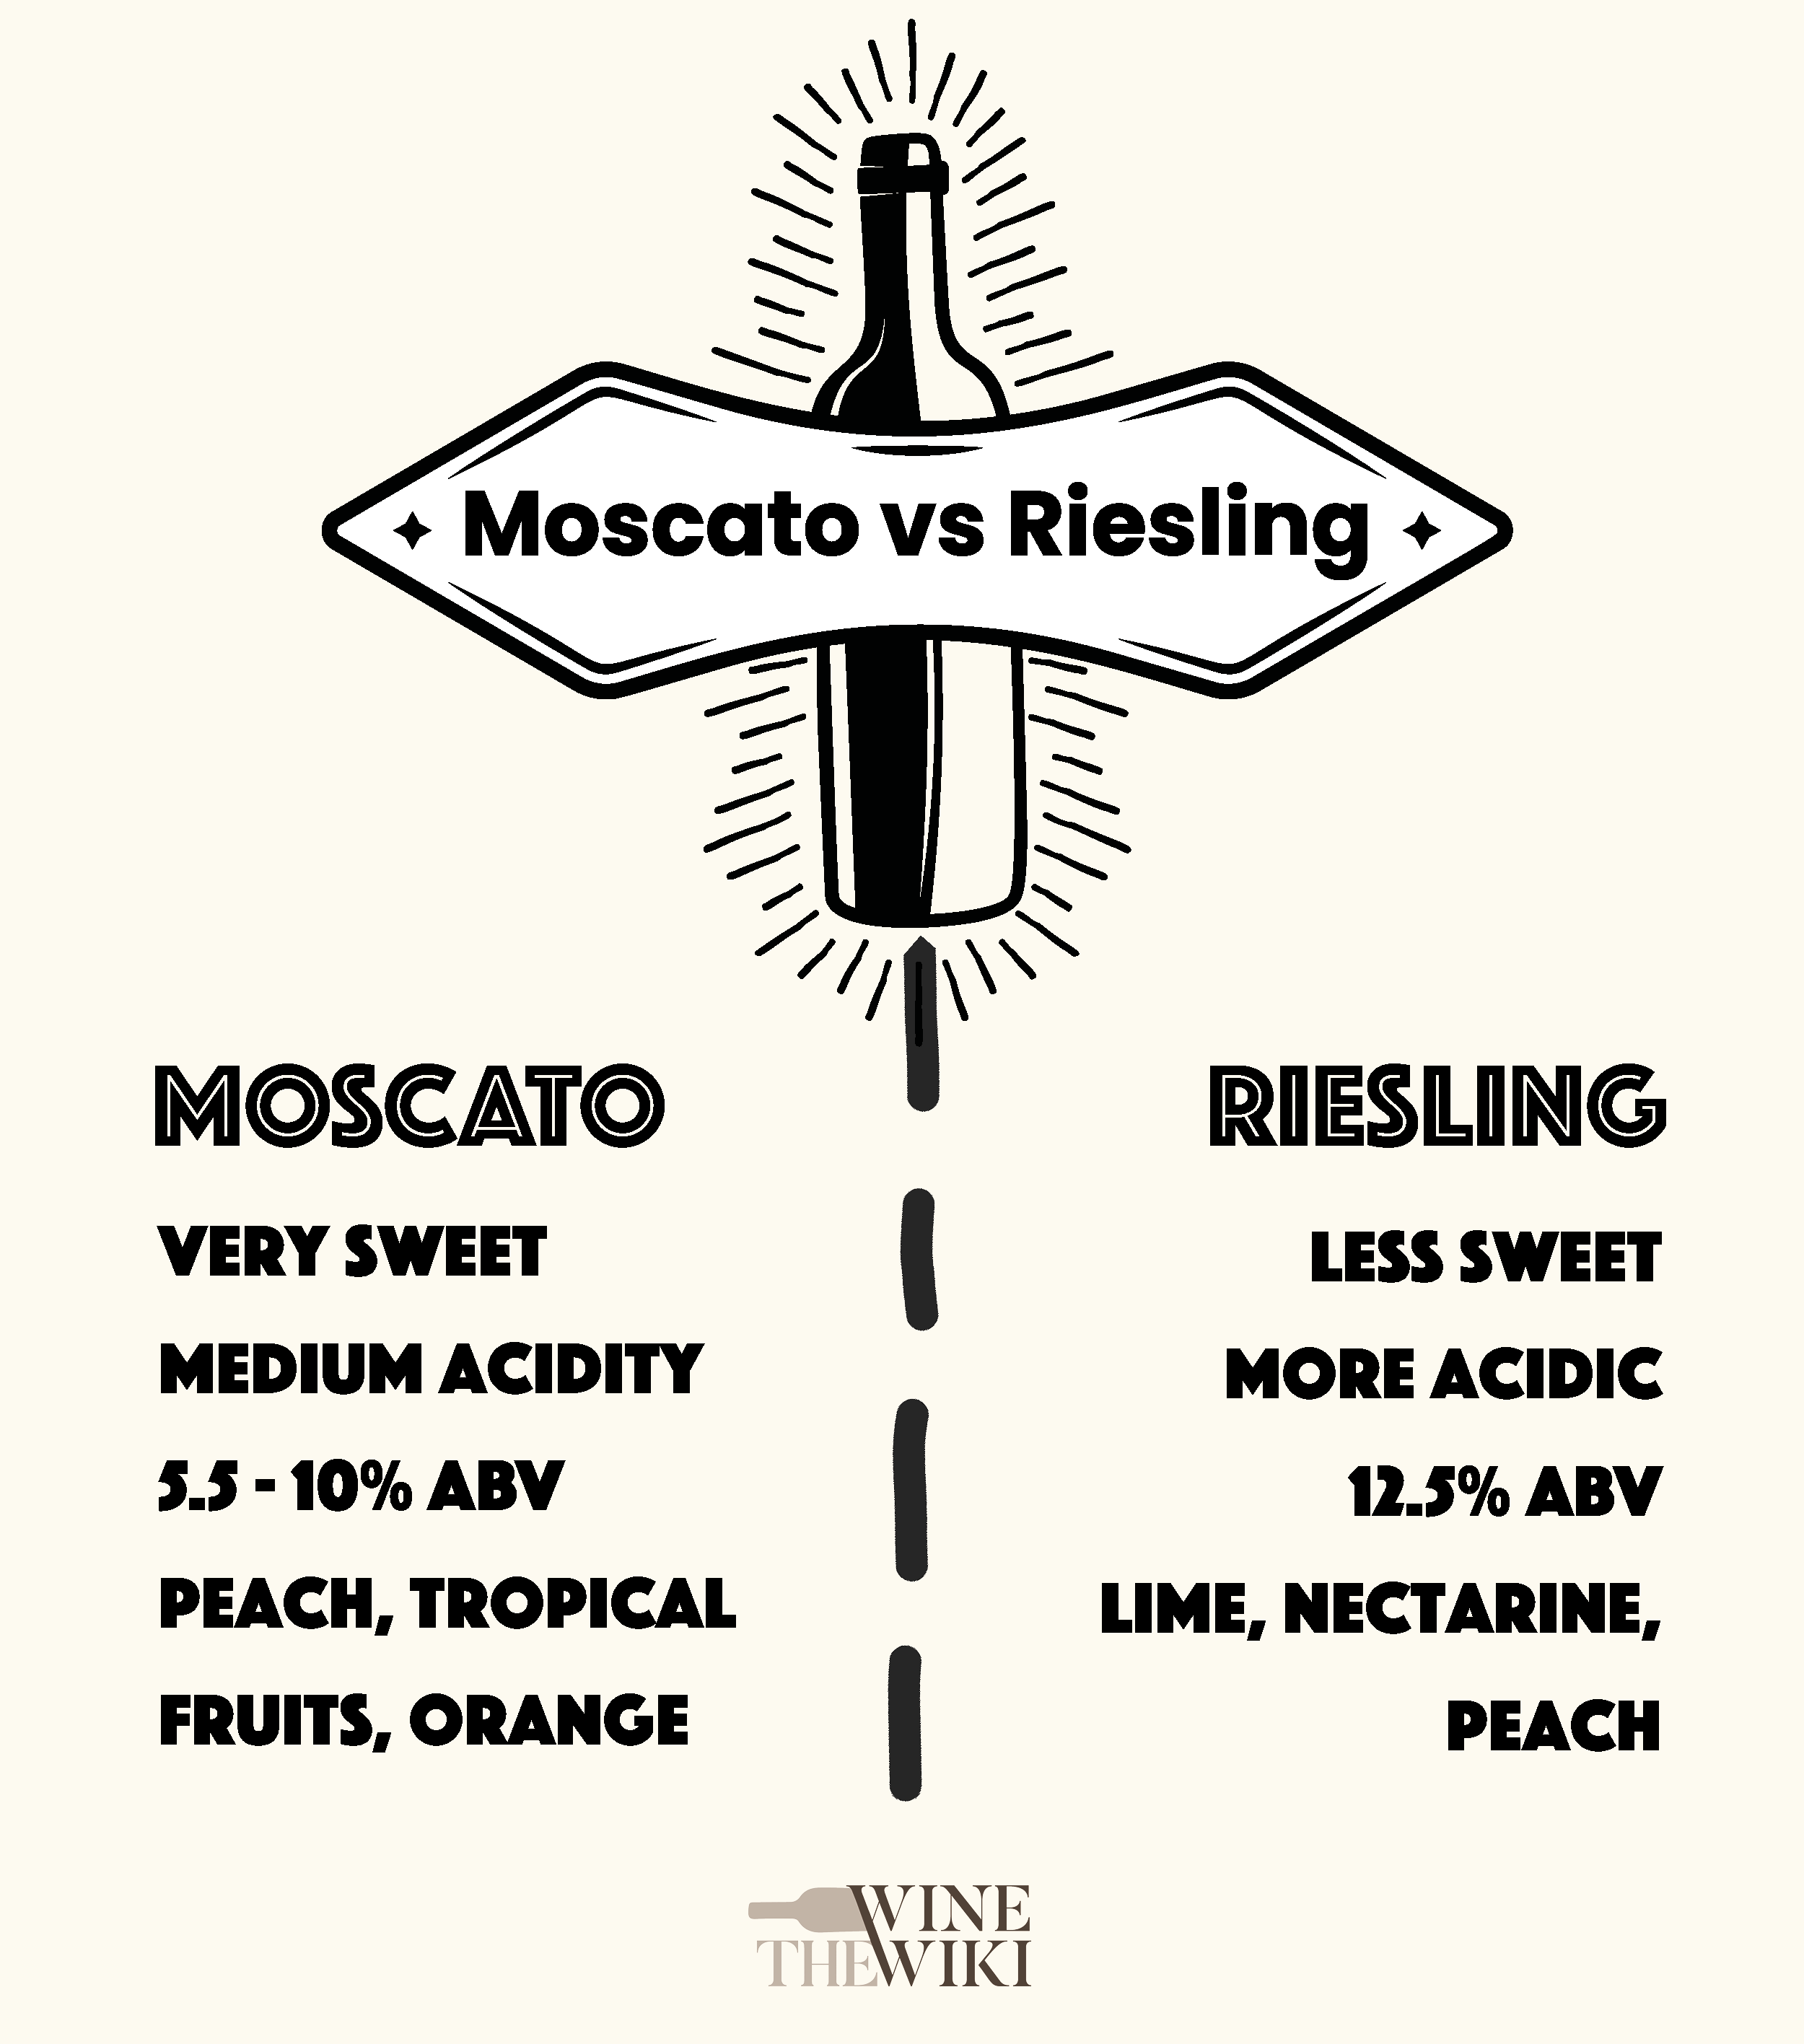 Moscato vs Riesling: which is better? [infographic]